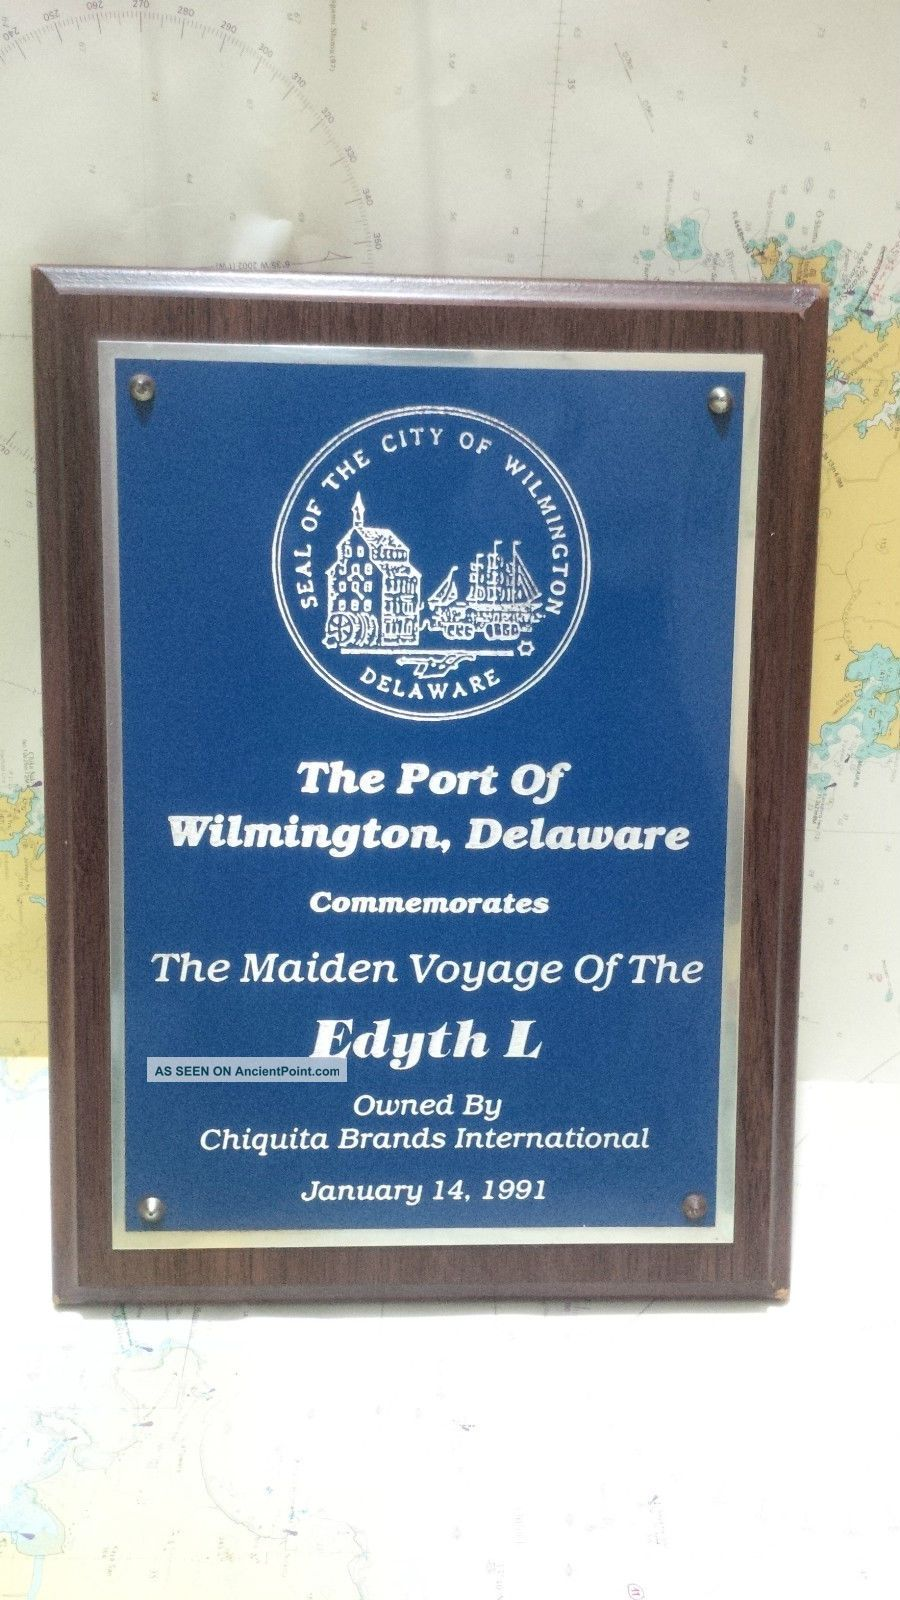 Nautical Vintage  The Port Of Wilmington Delware Edyt L  Eccentric Shield S082 Plaques & Signs photo